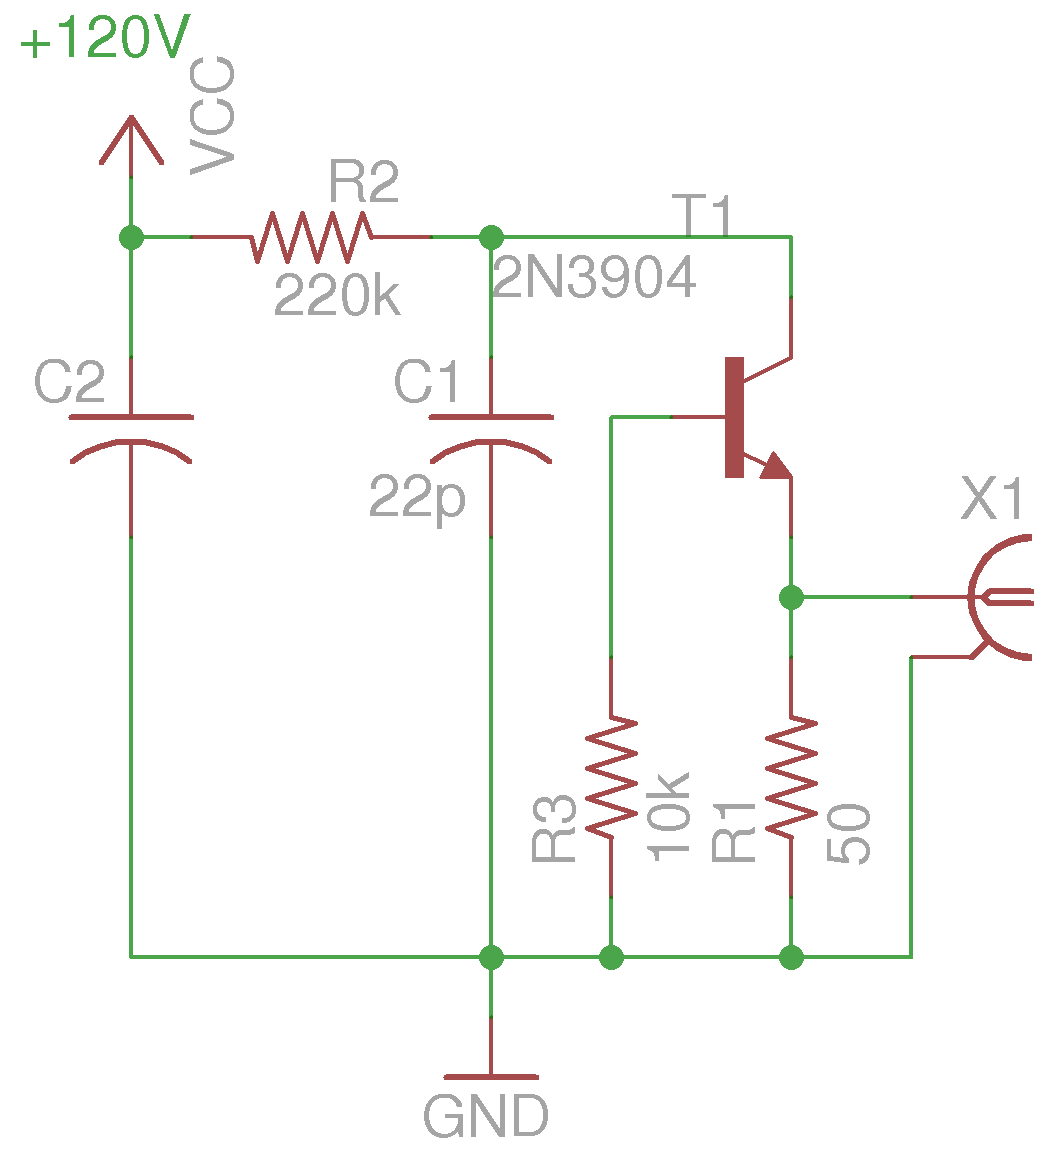 Pulse Generator Schematic Diagrams Crystal Oscillator Signalprocessing Circuit Diagram Seekiccom Kerry D Wong Blog Archive Avalanche Build Using Car 2n3904